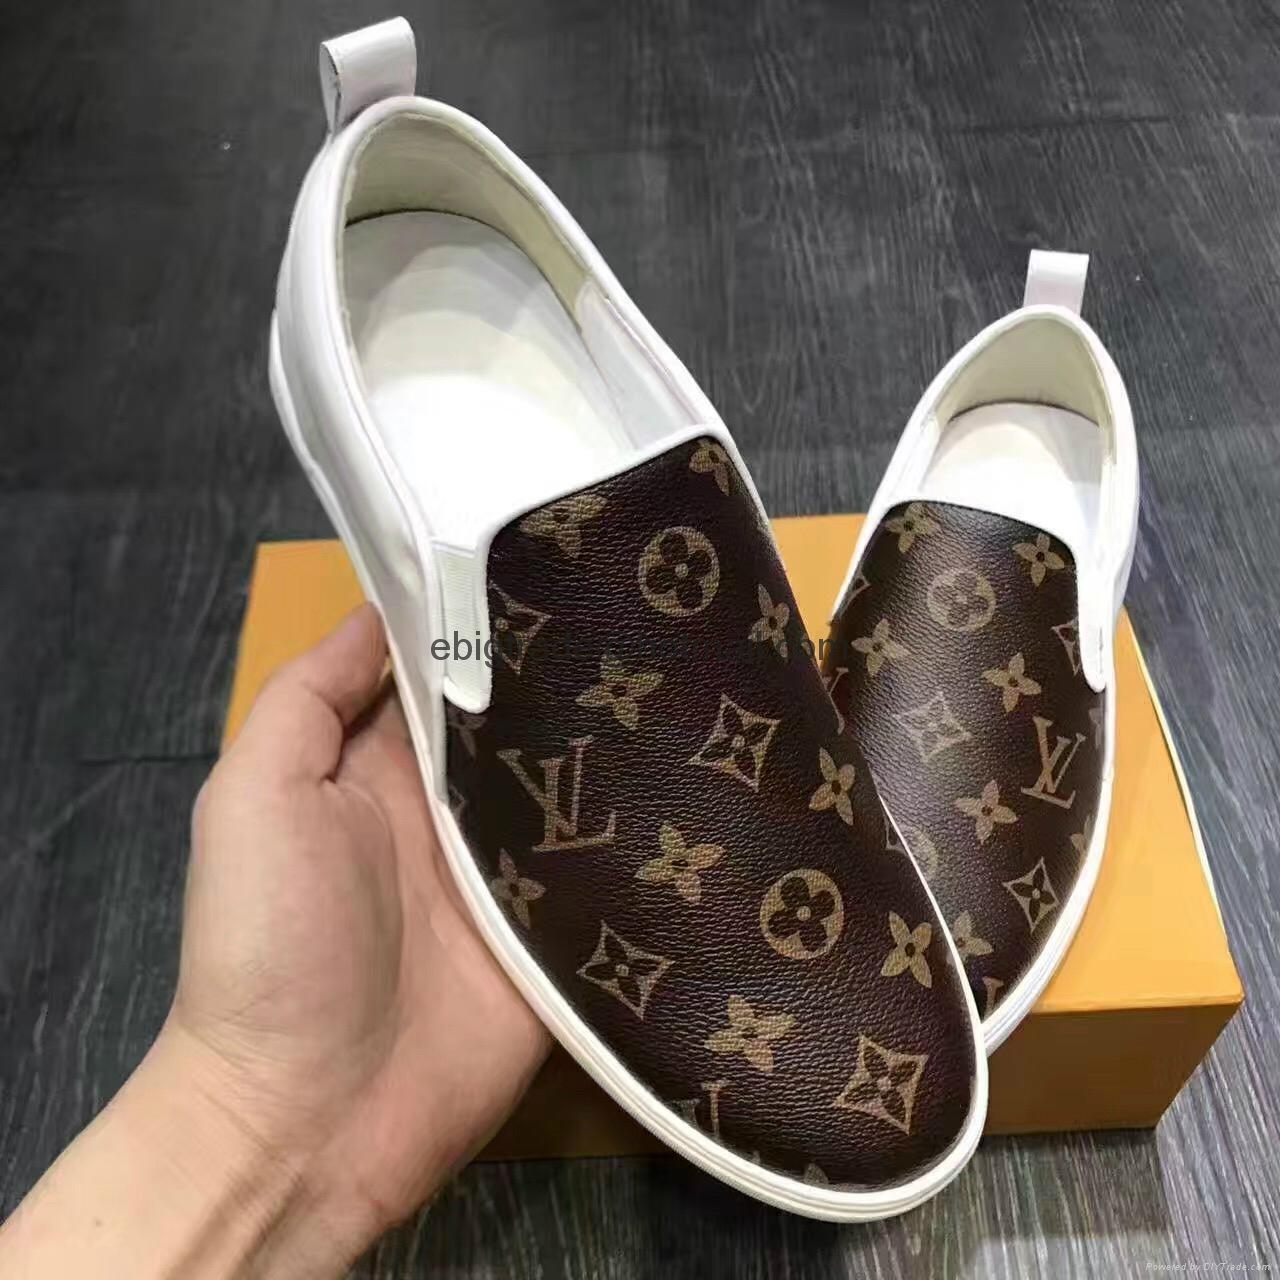 LV shoes for sale